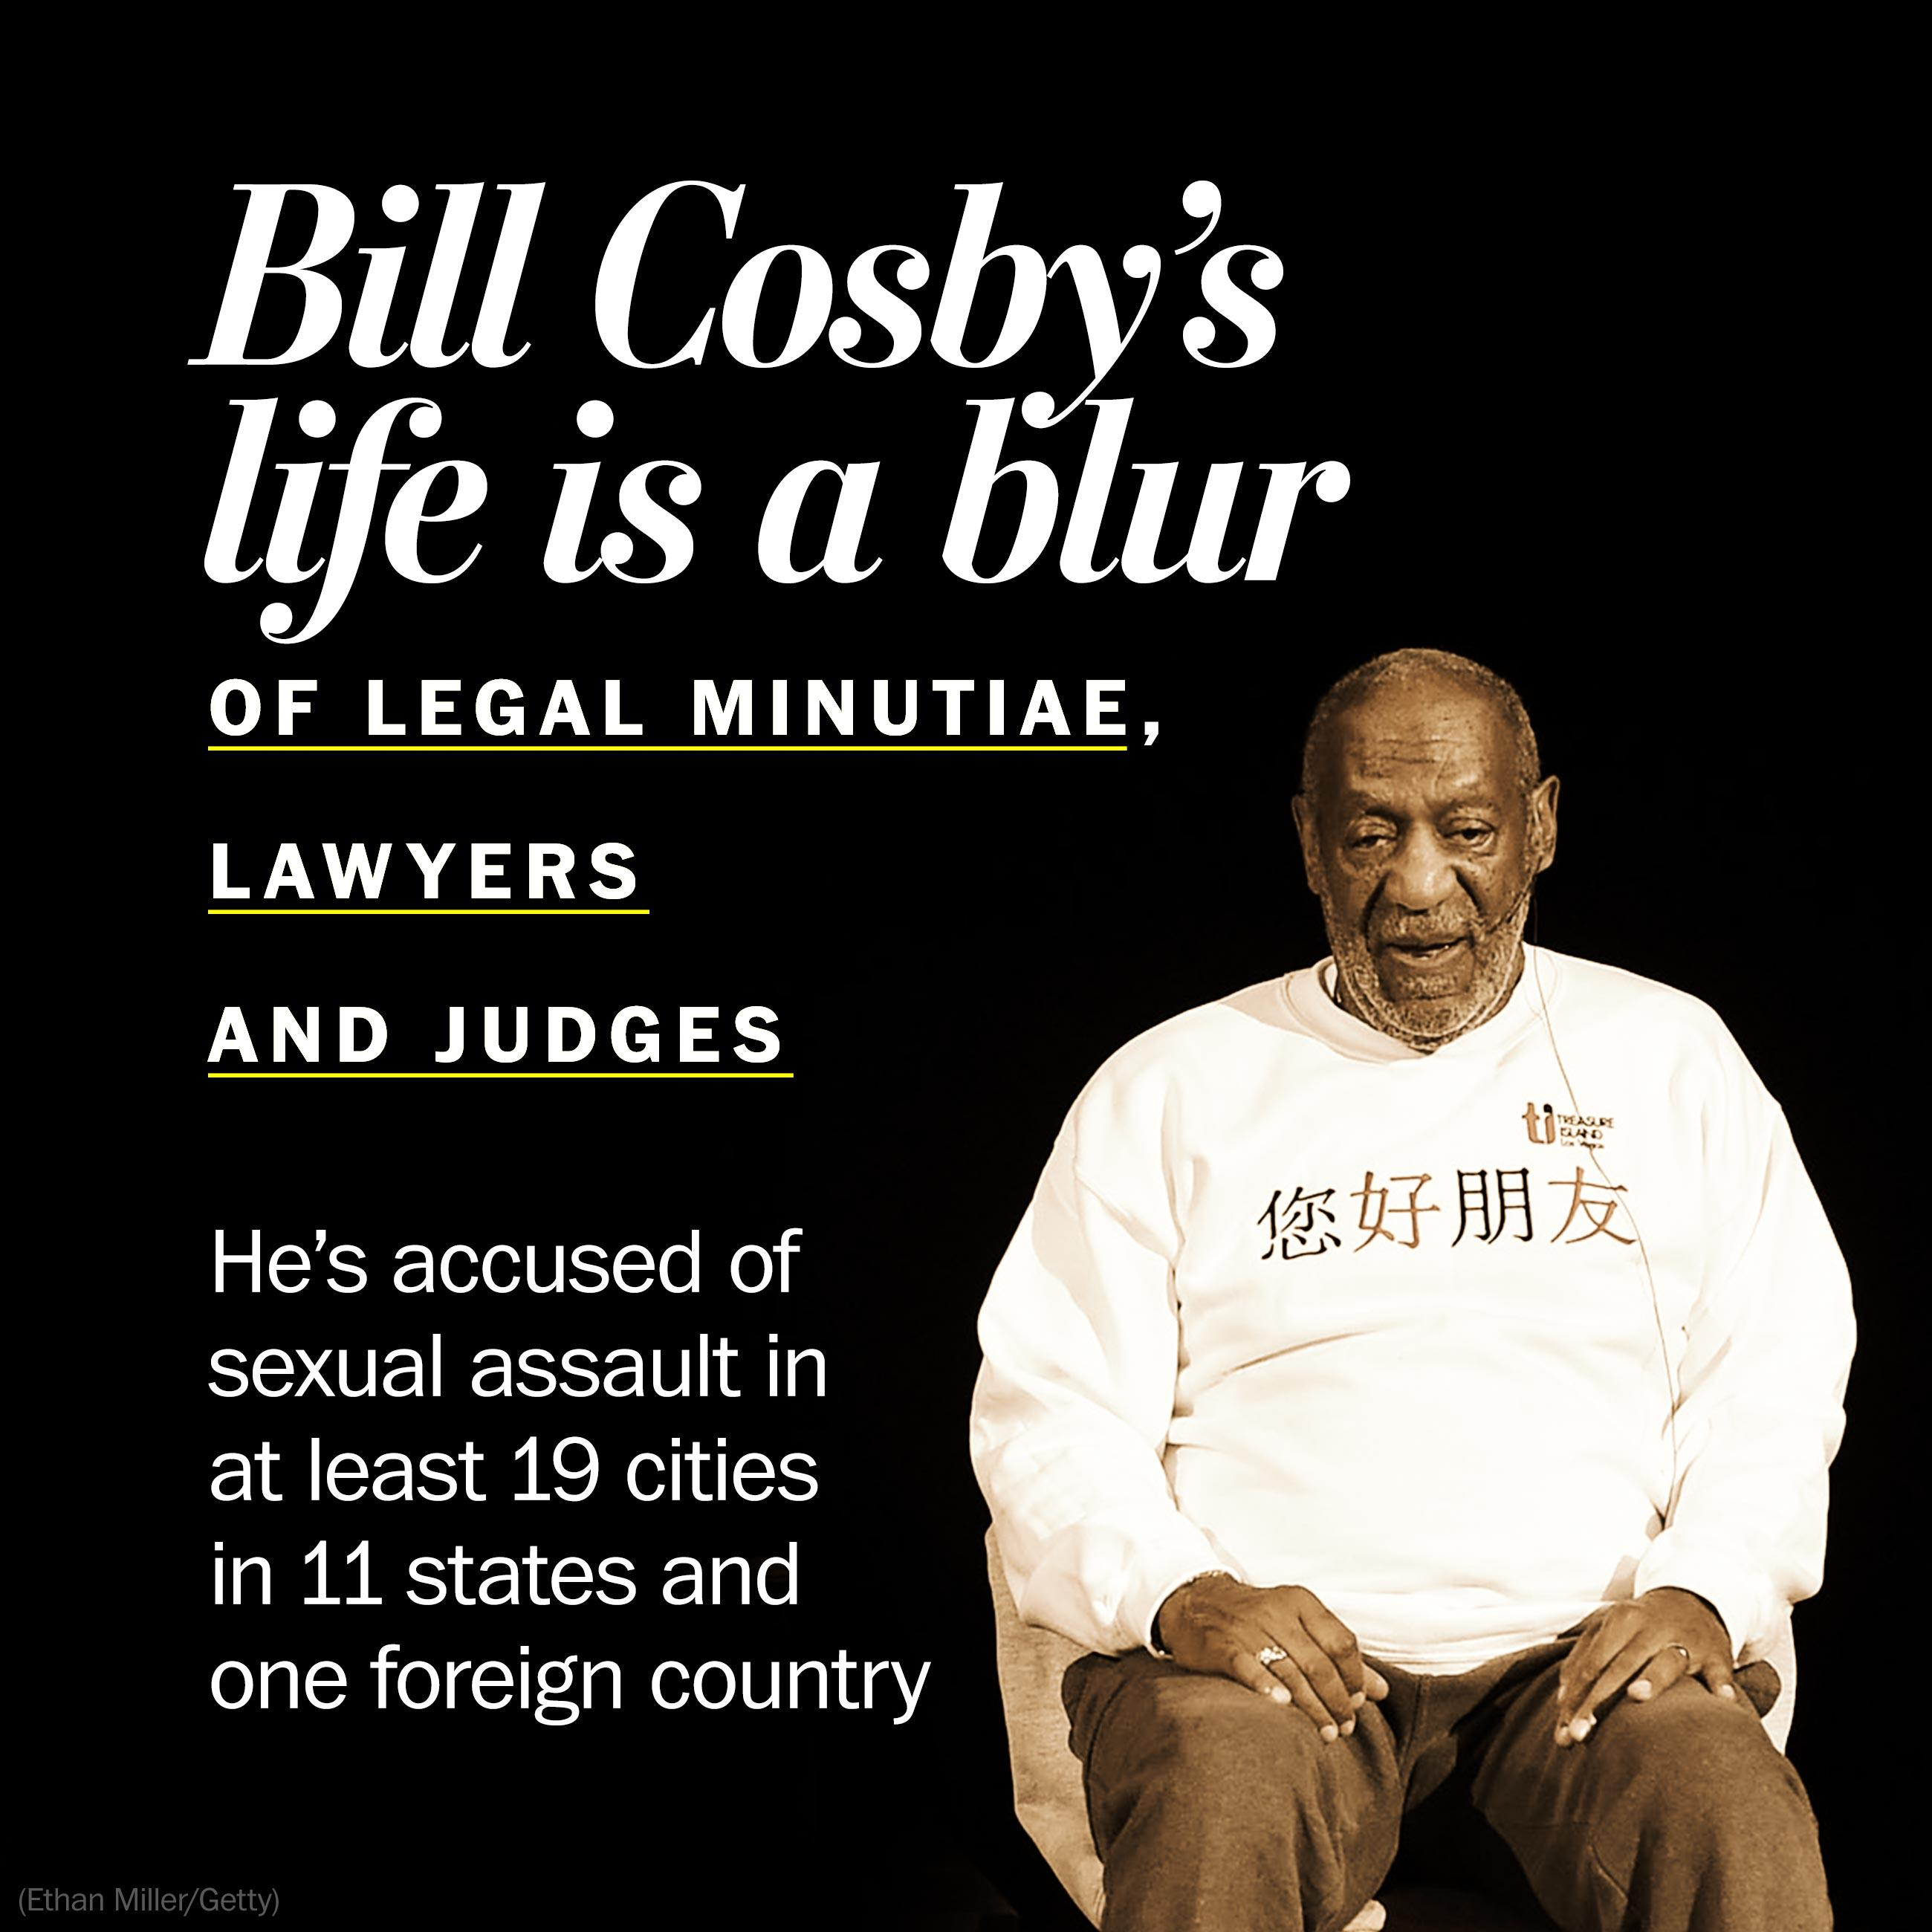 At 78, Bill Cosby's life is a blur of legal minutiae, lawyers and judges